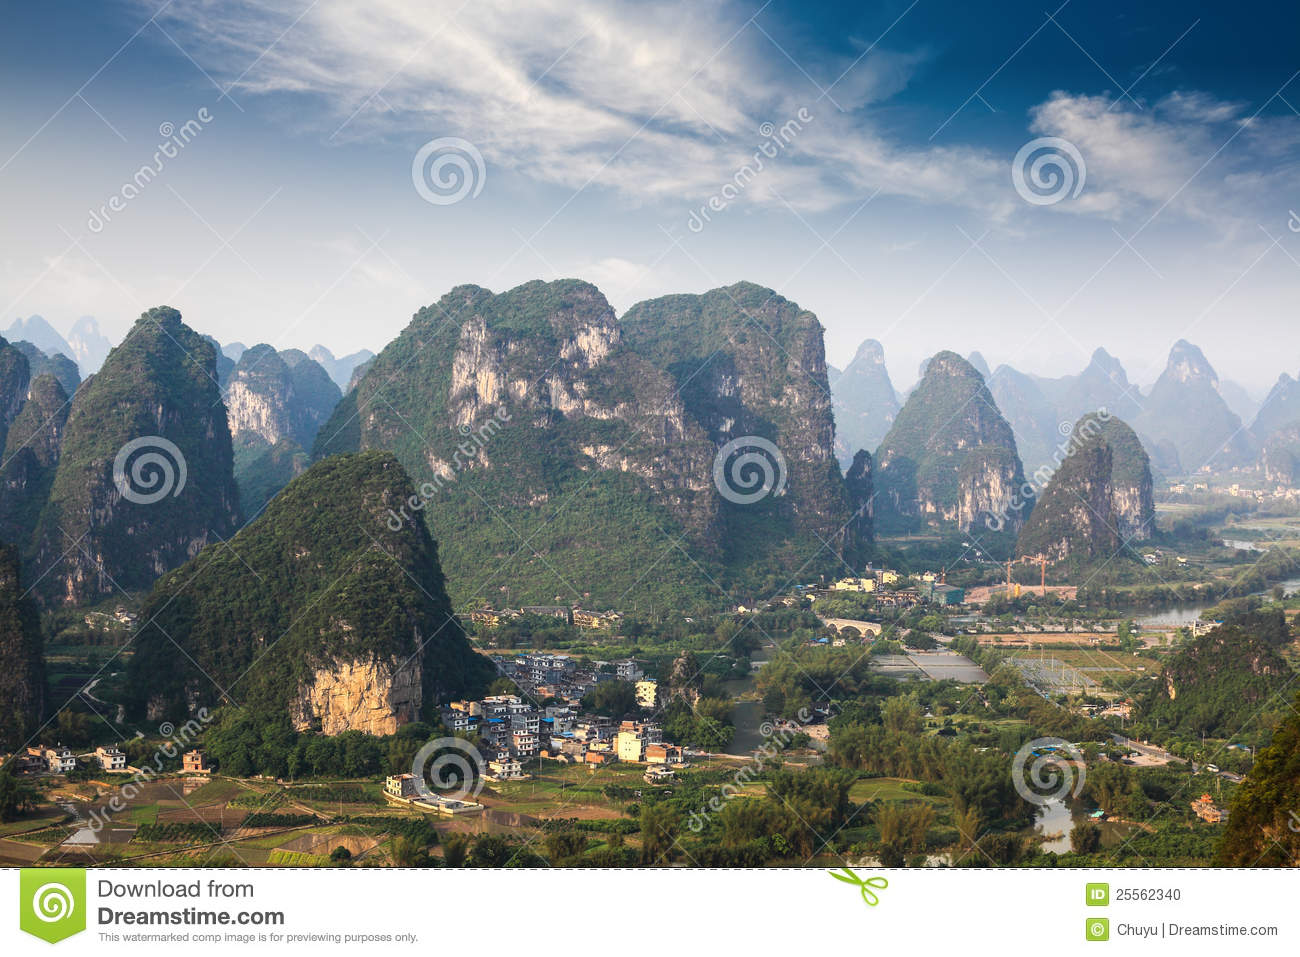 Aerial View Of Karst Mountain Landscape Stock Photo - Image: 25562340